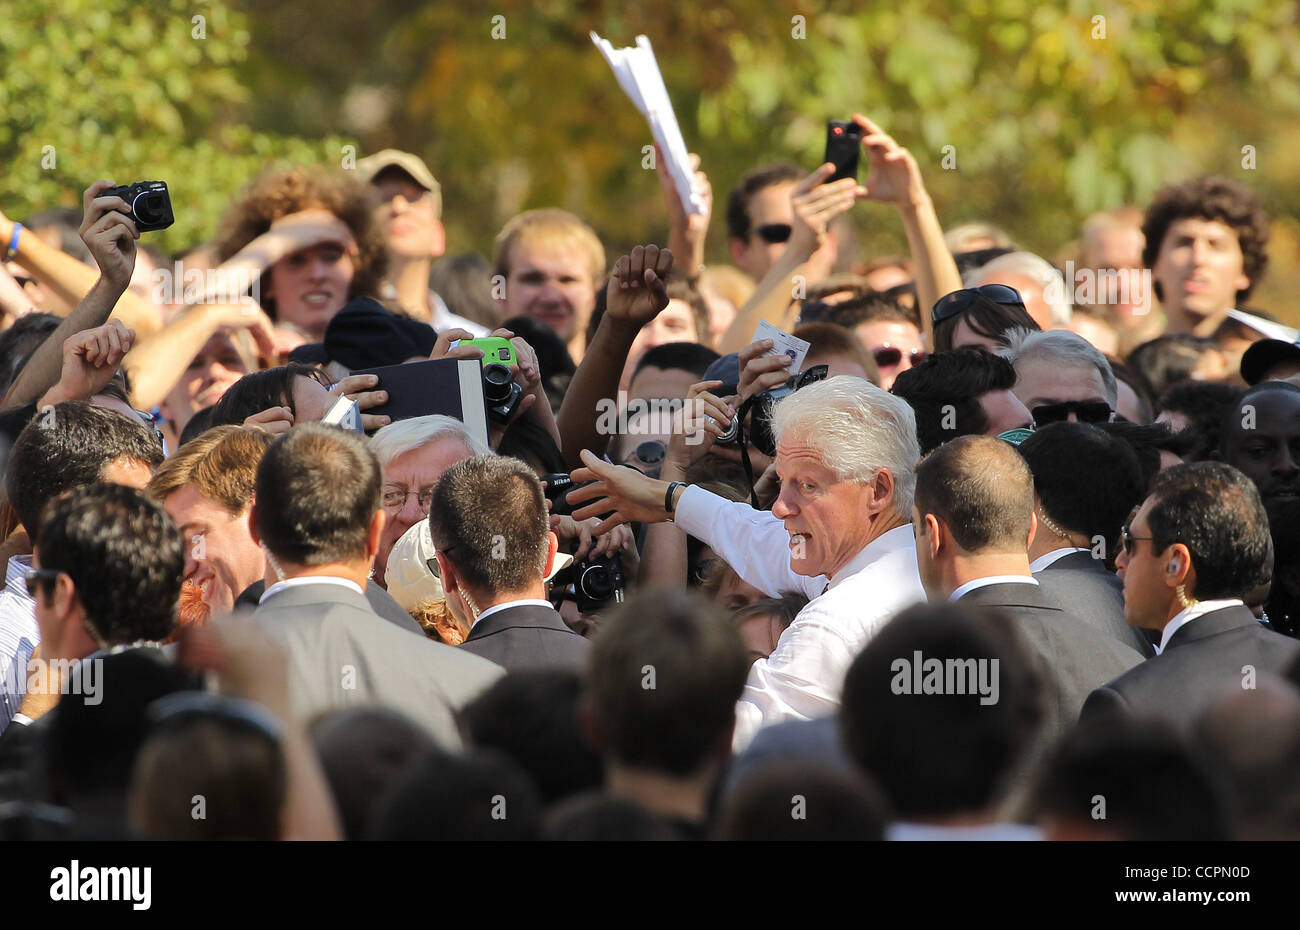 October 11, 2010 - Lexington, Kentucky, USA. - President BILL CLINTON greets students, faculty and staff after he - Stock Image